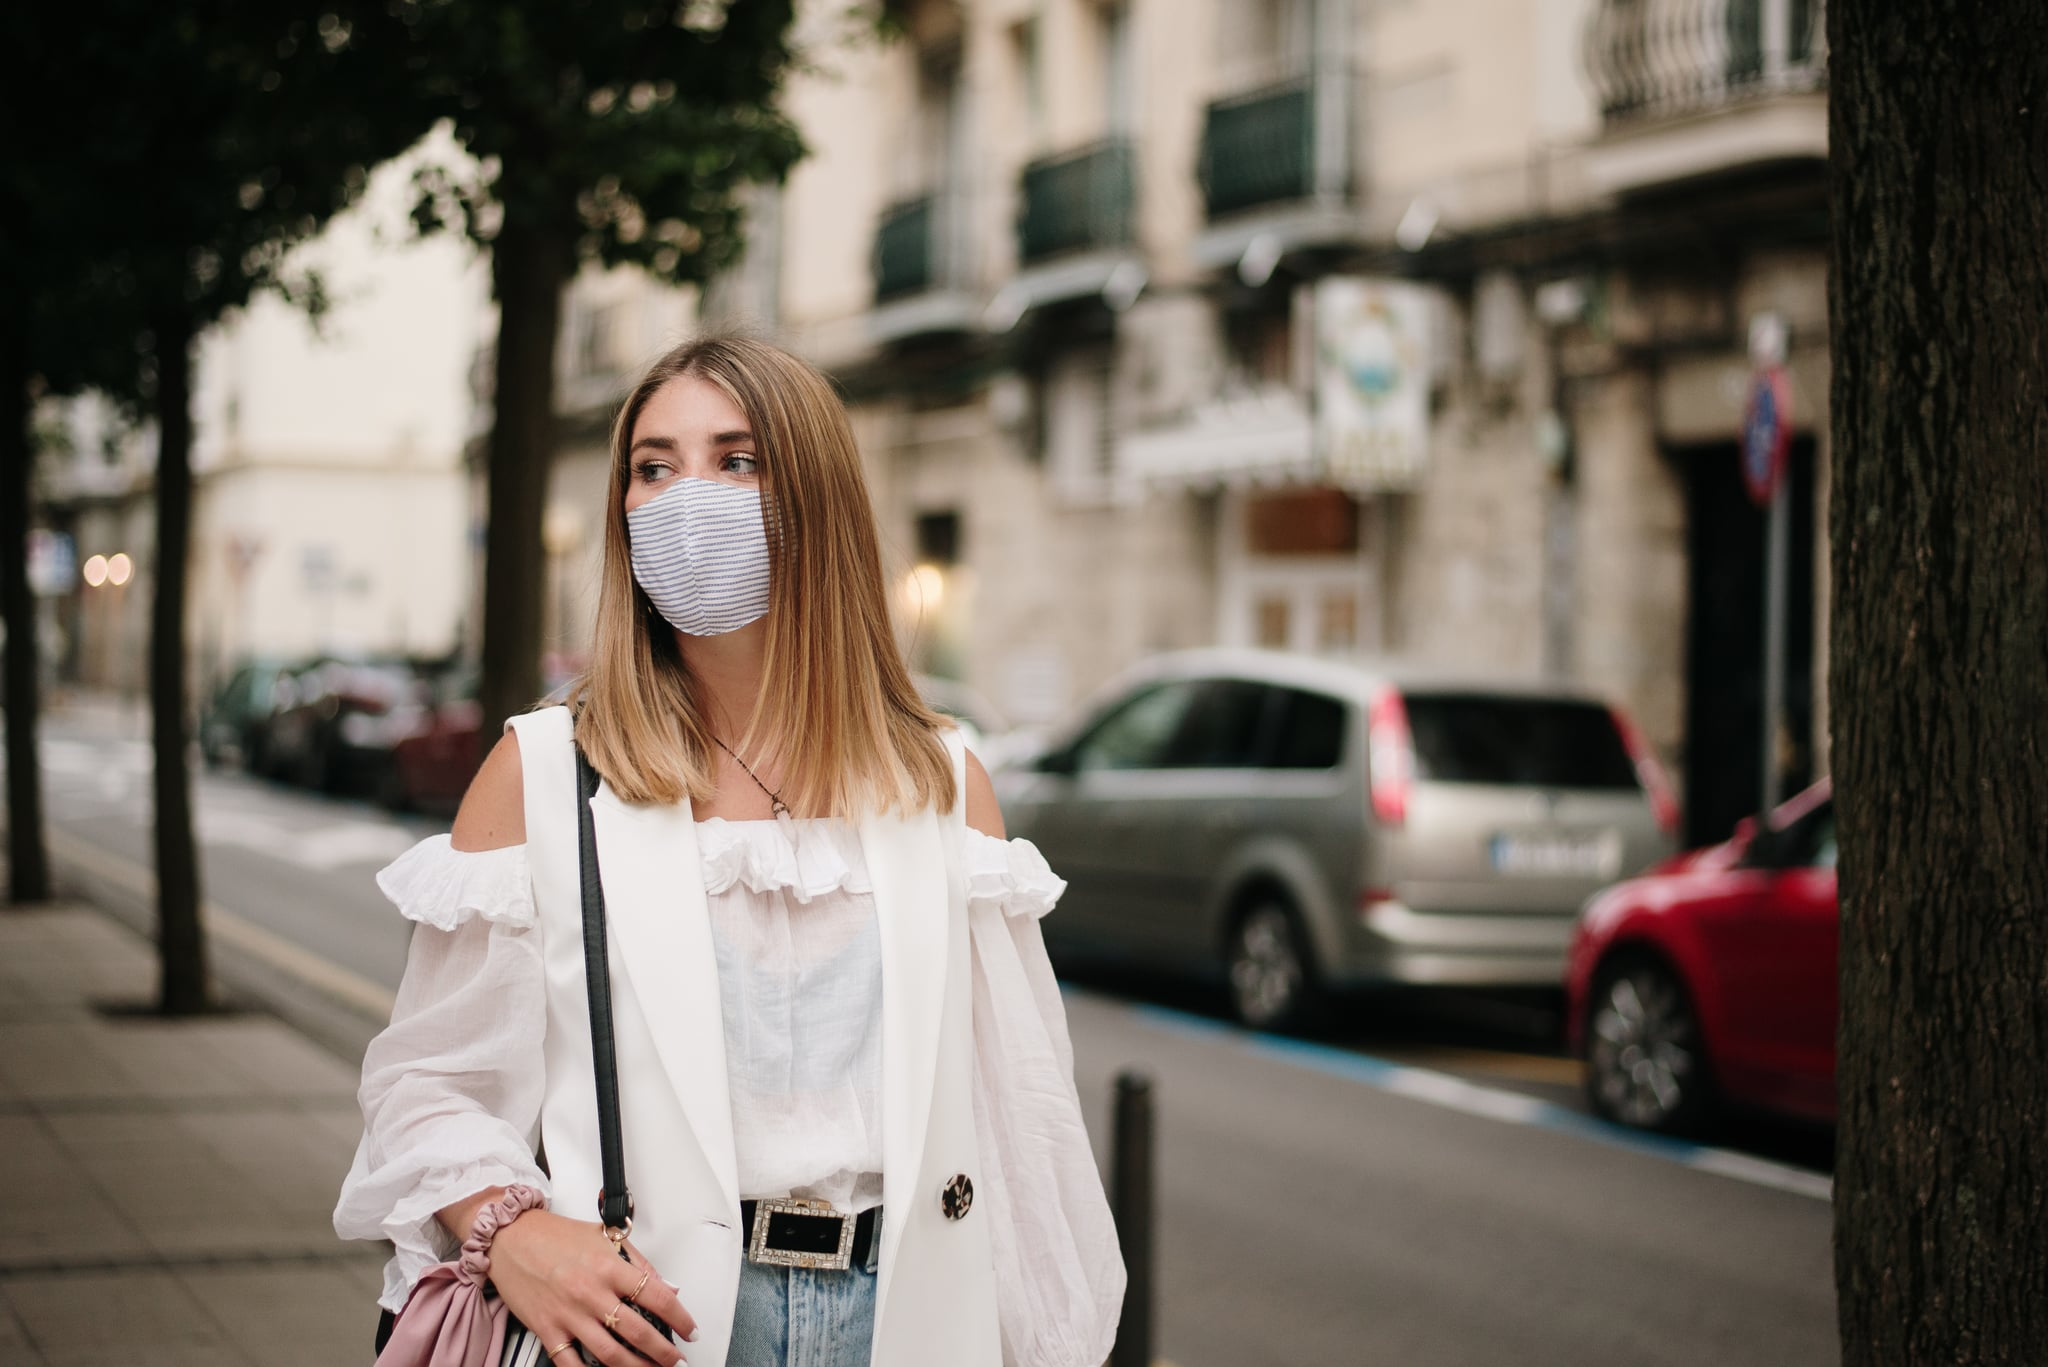 A young woman in a city street, wearing a protective face mask during the COVID-19 pandemic